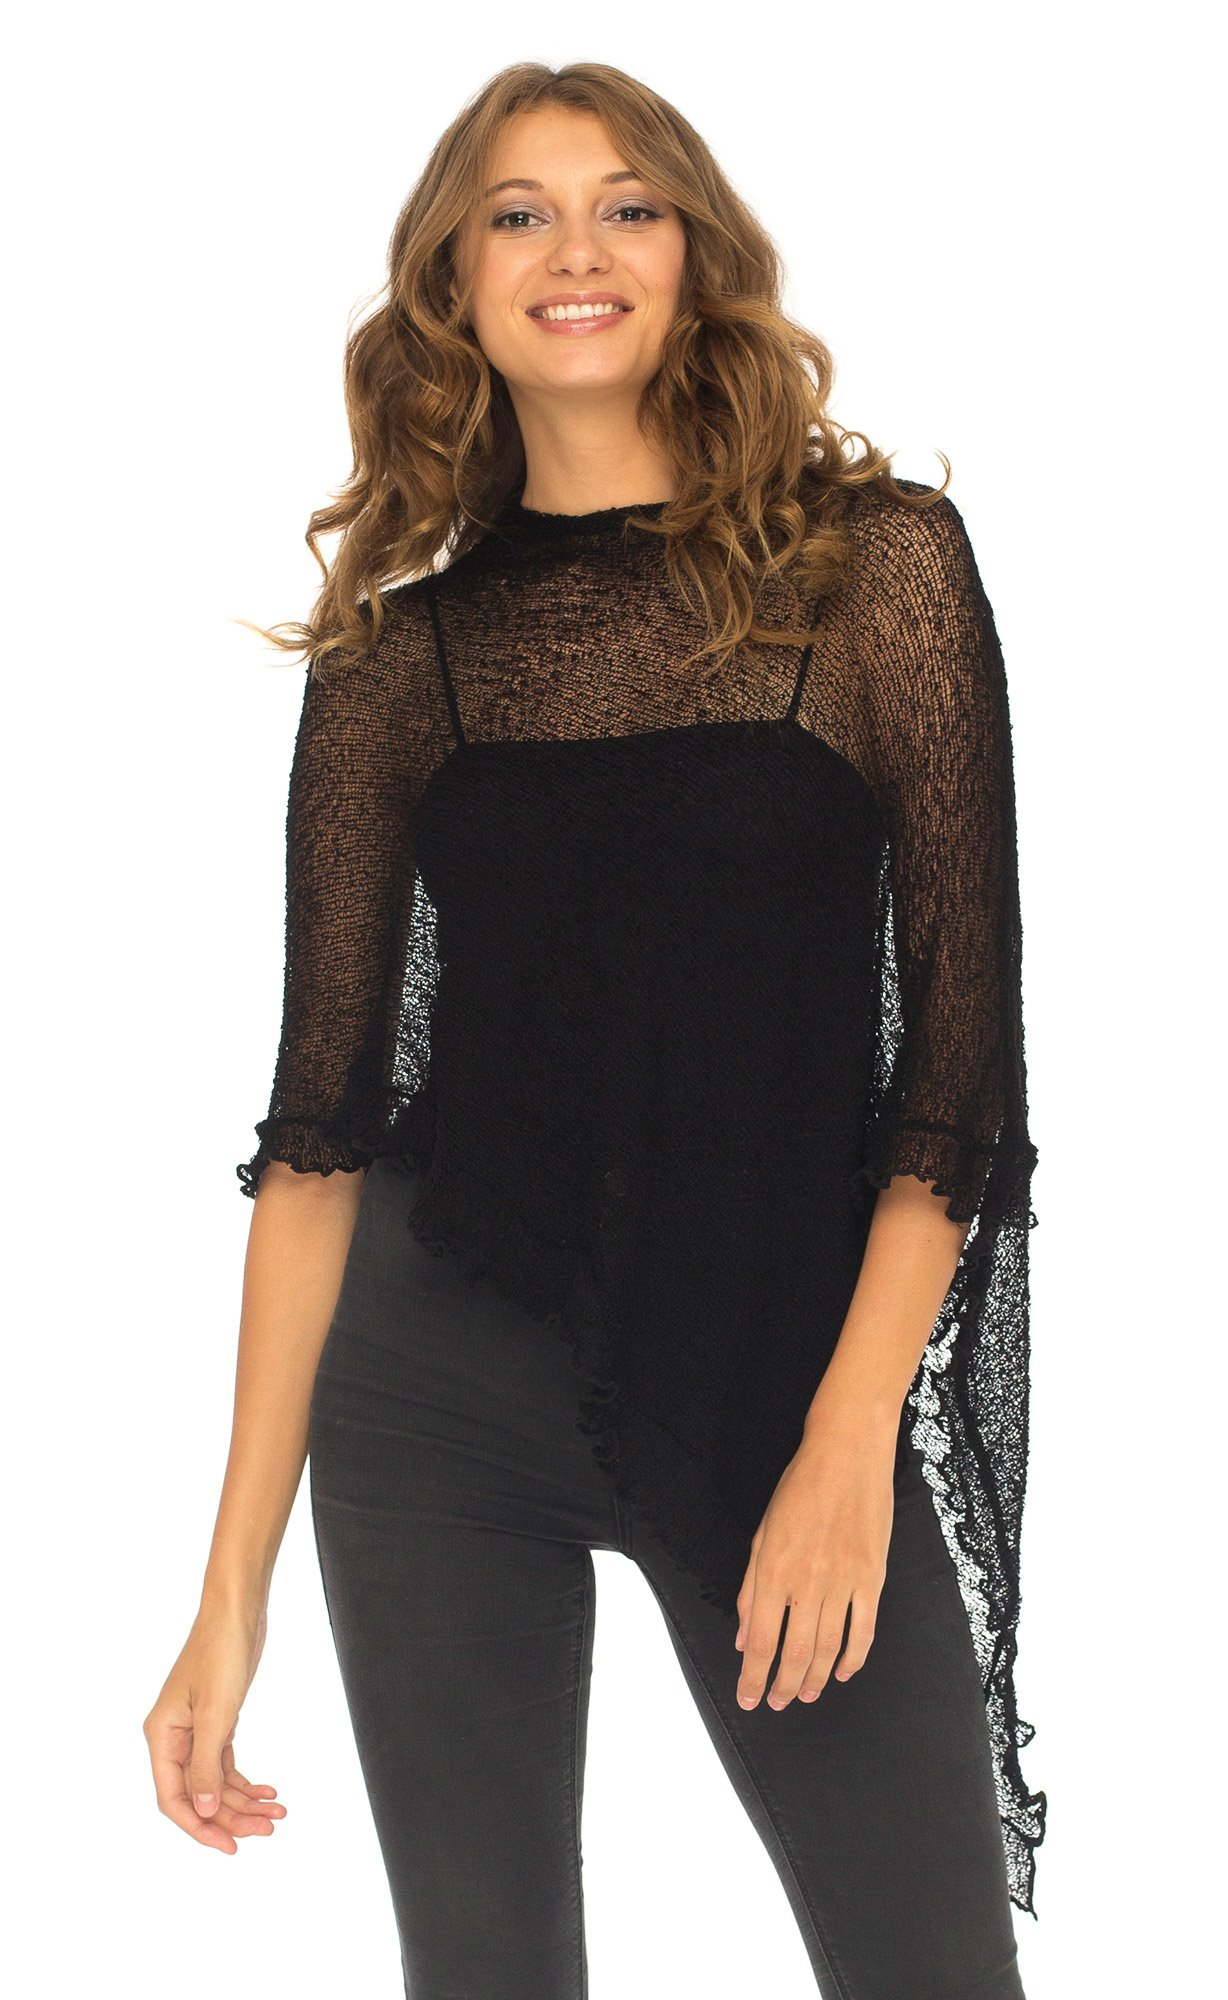 SHU-SHI Womens Sheer Poncho Shrug Lightweight Knit with Ruffle One Size Fits Most